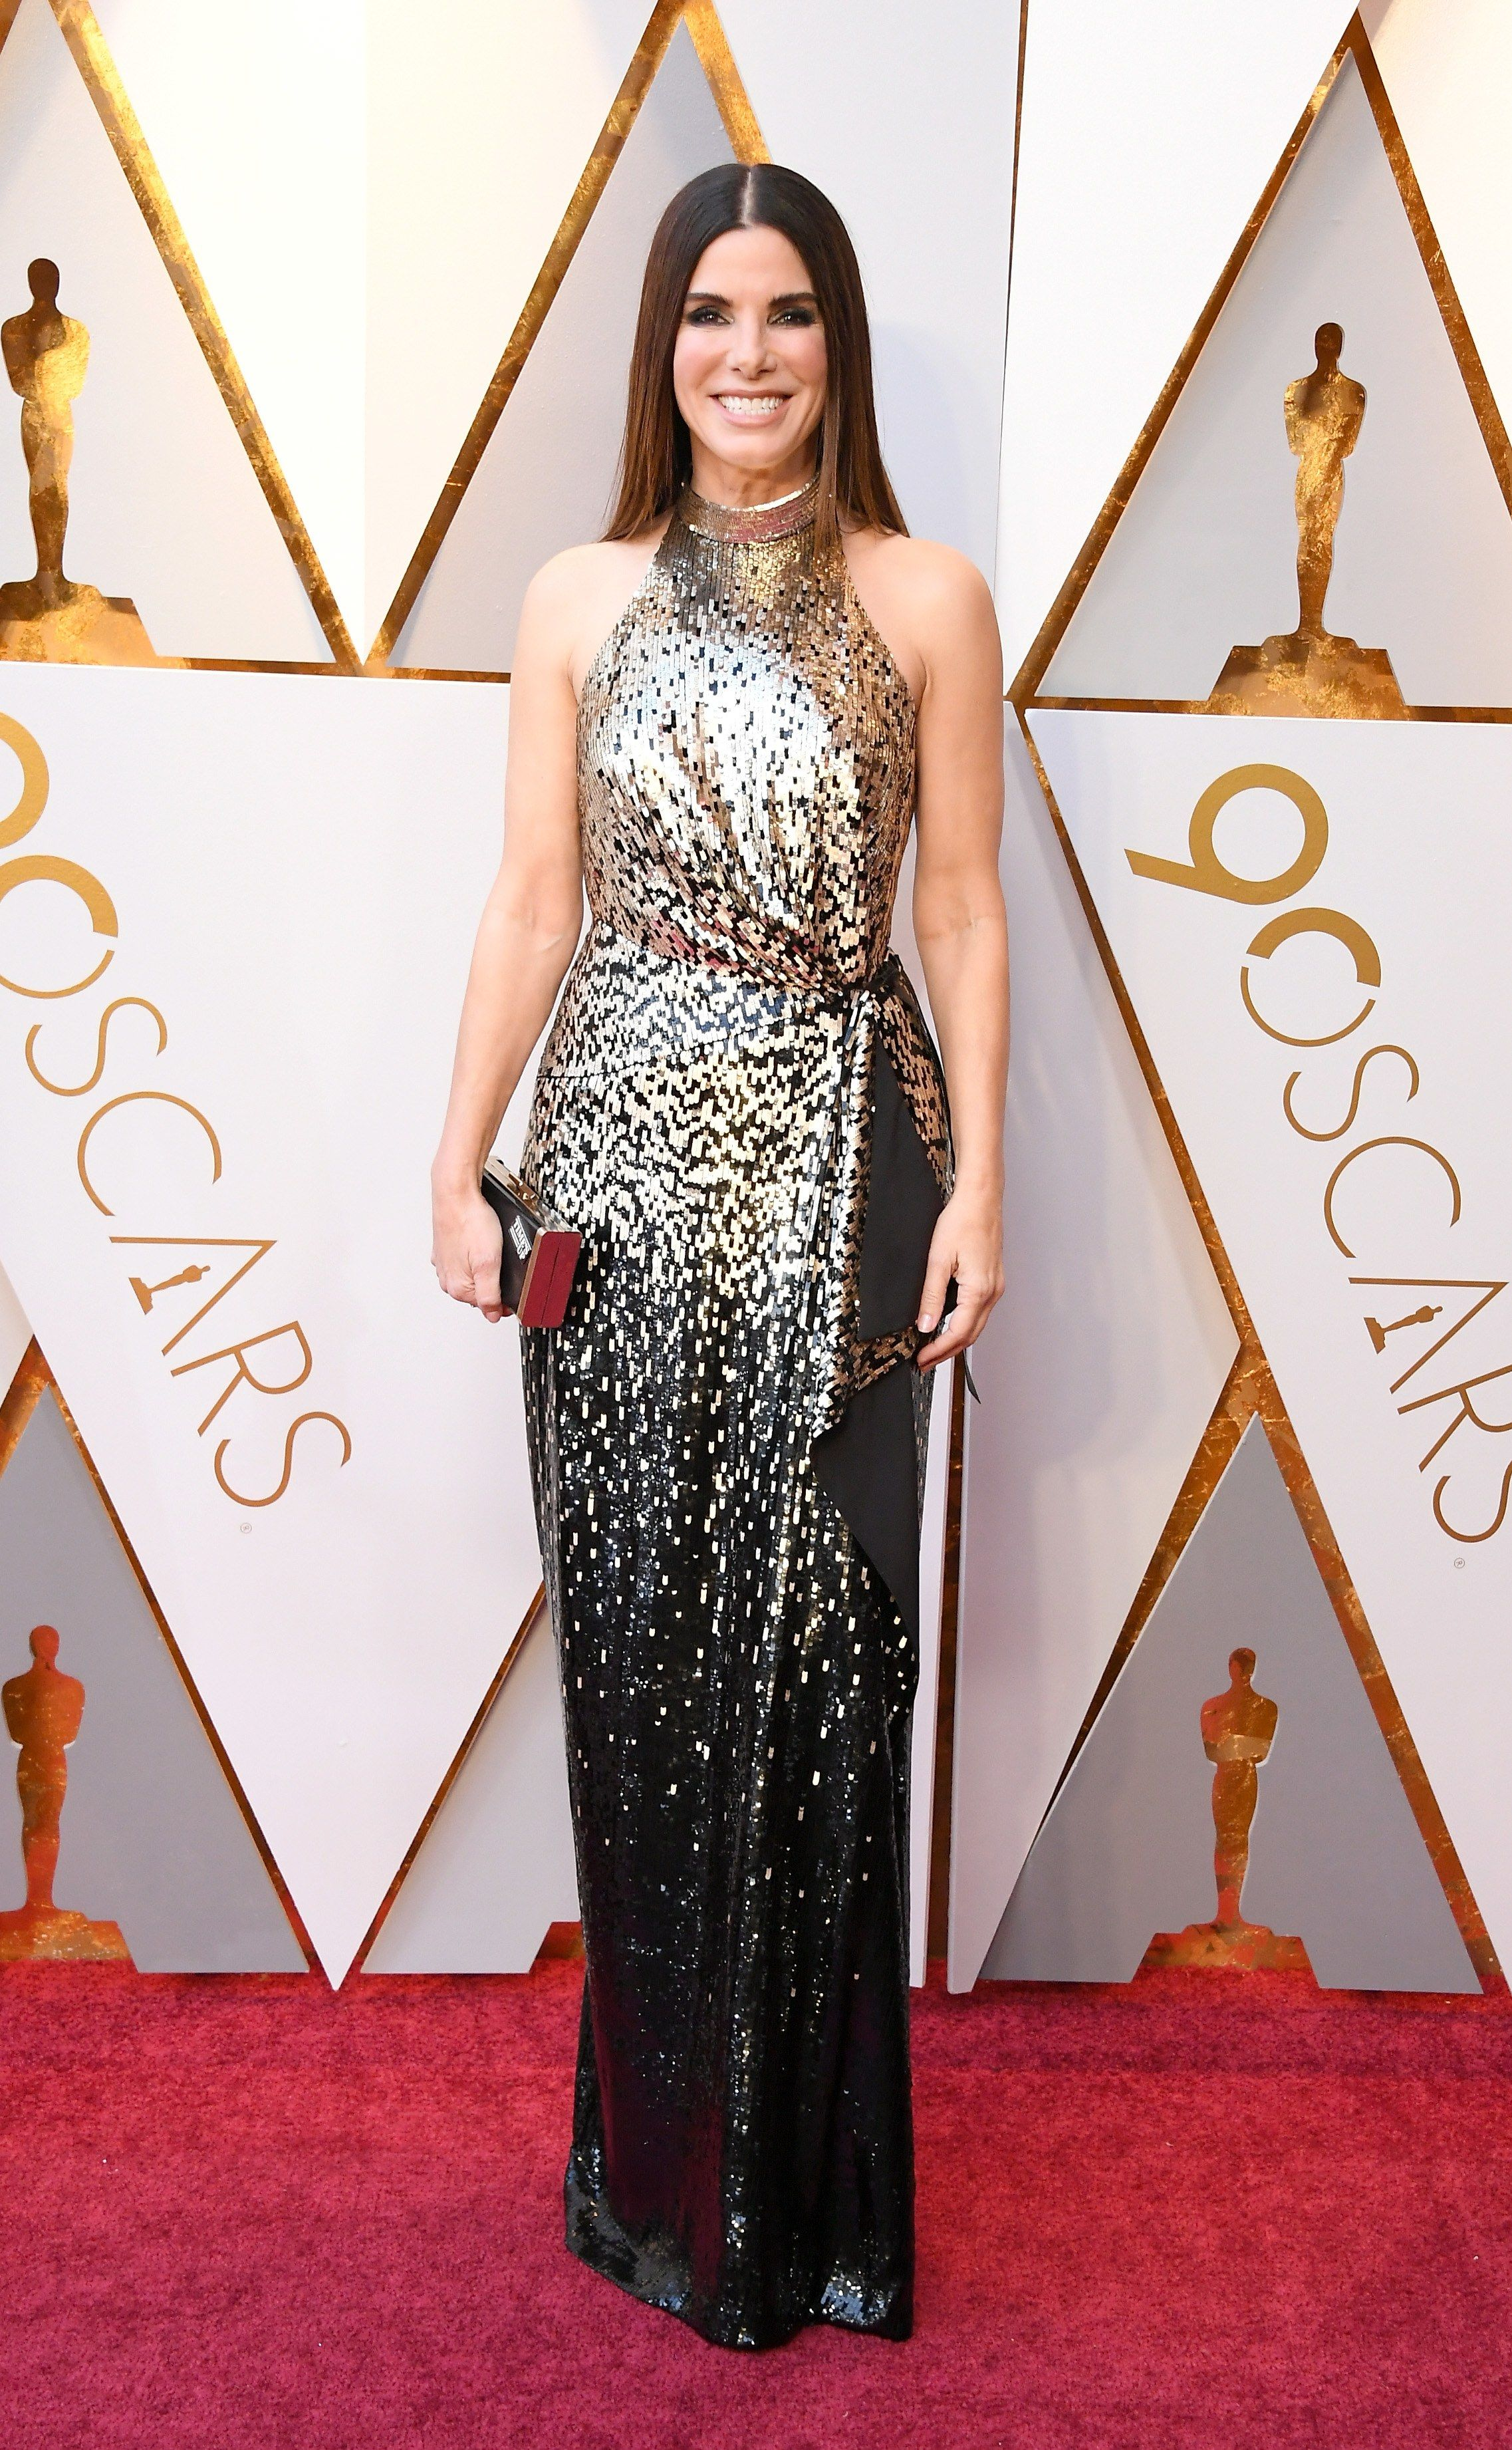 Roter Teppich Kleider Oscars 2018 Fashion Live From The Red Carpet Gowns Too